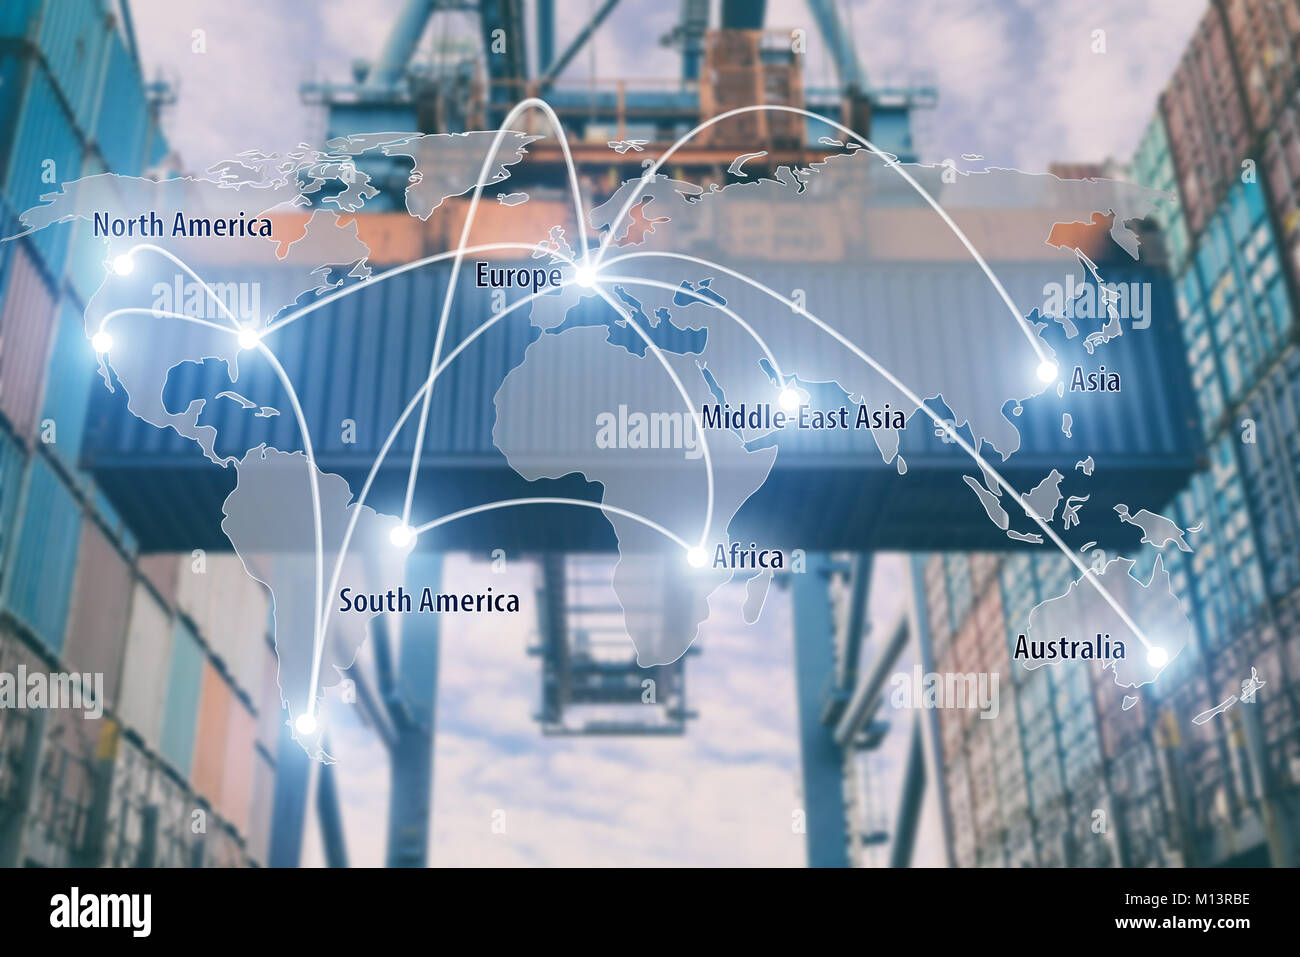 Network connection partnership logistics and world map with port in background.Network connection logistics technology - Stock Image